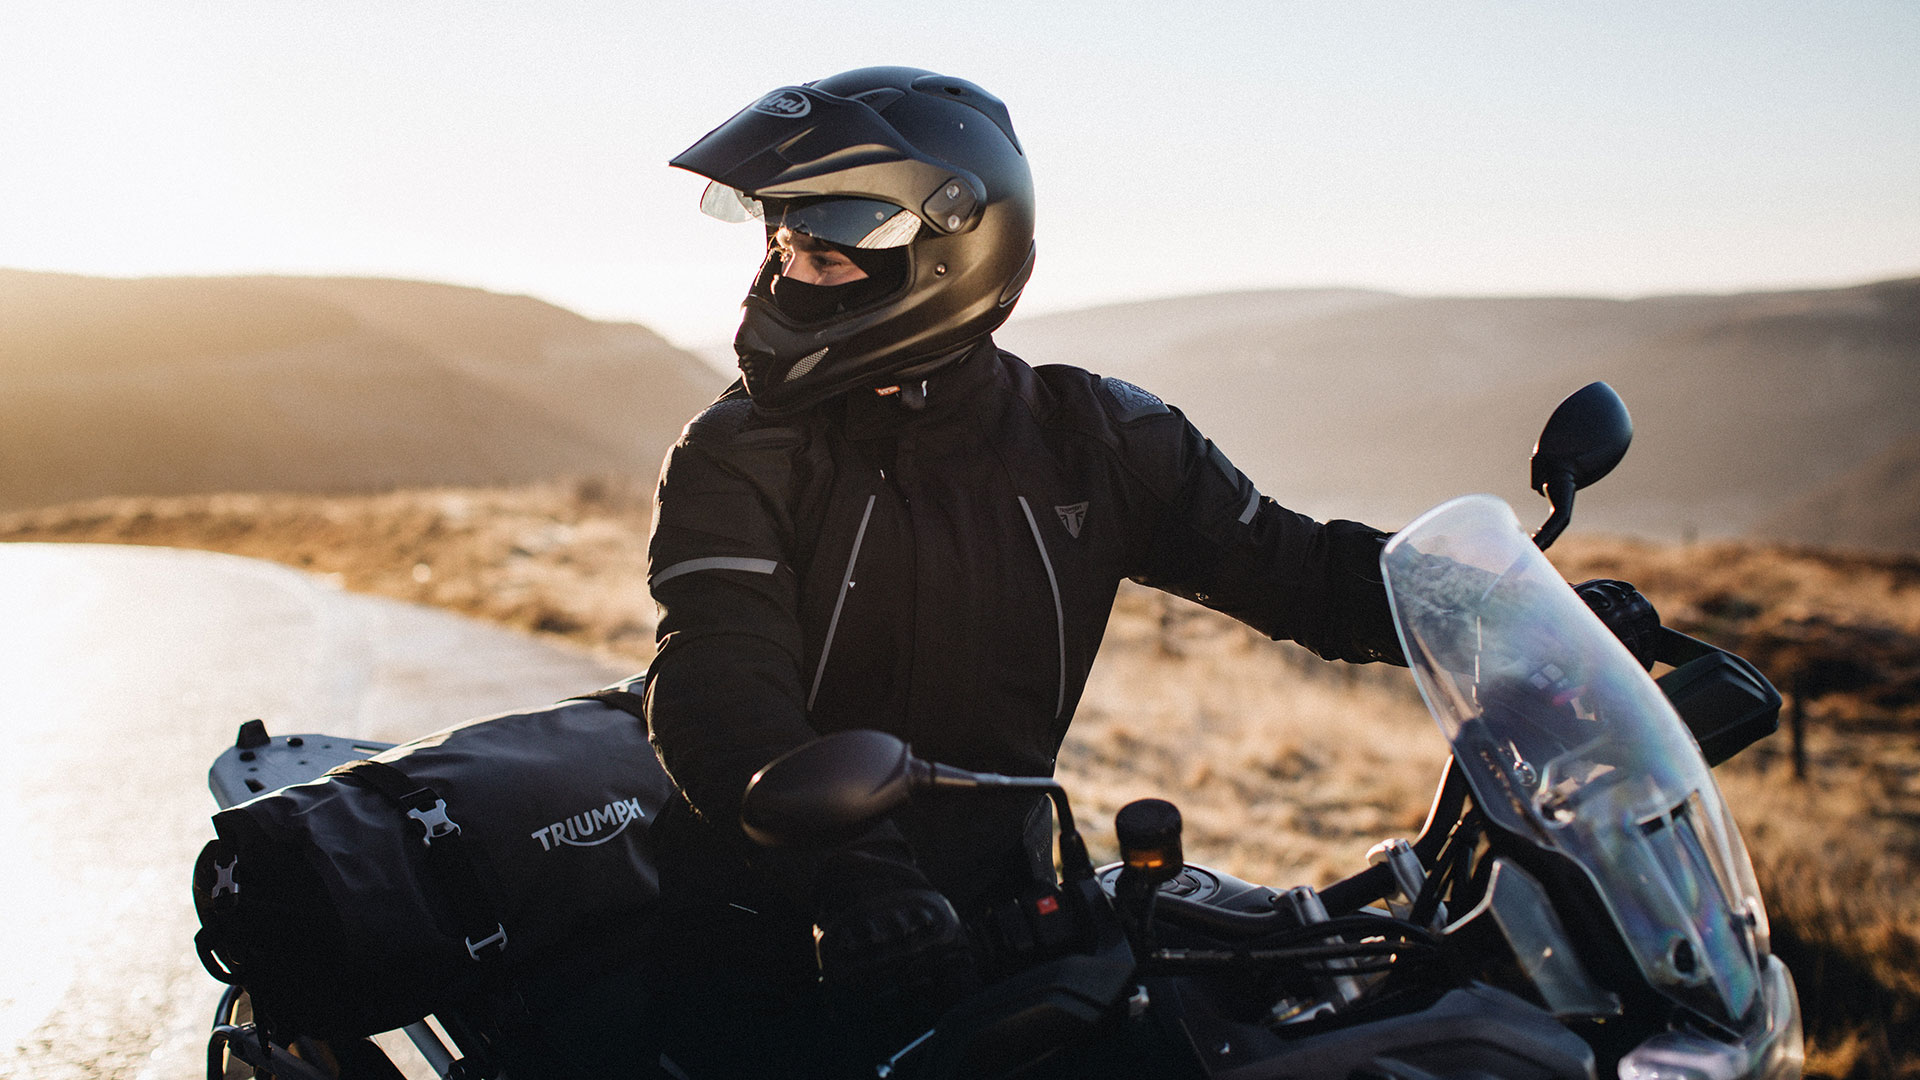 Triumph Motorcycles Adventure Touring Clothing Location Model Alder Jacket & Jean